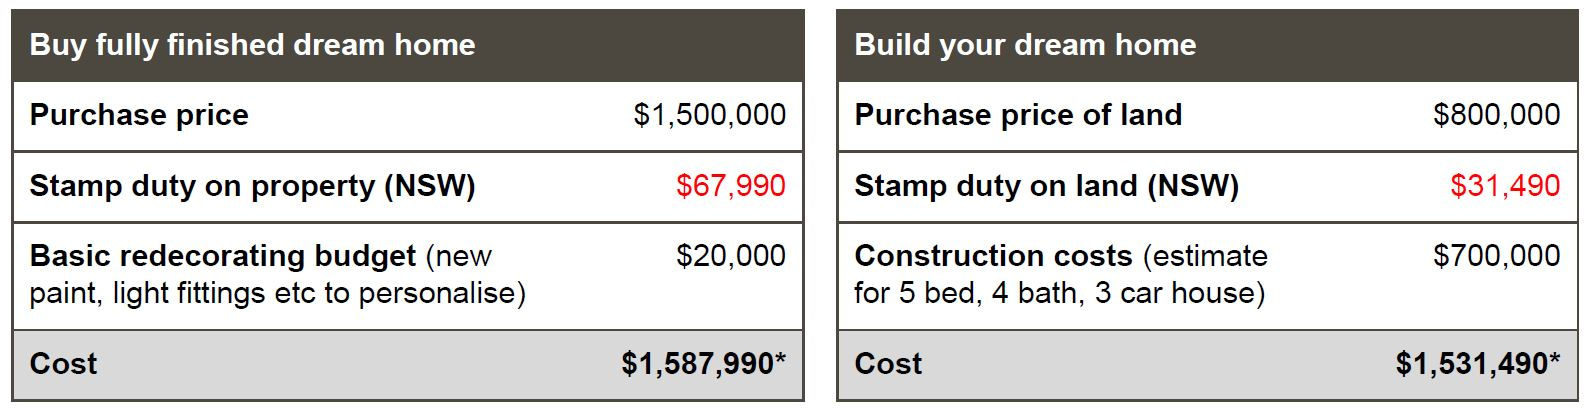 Build vs buy -* Costs are estimates only.